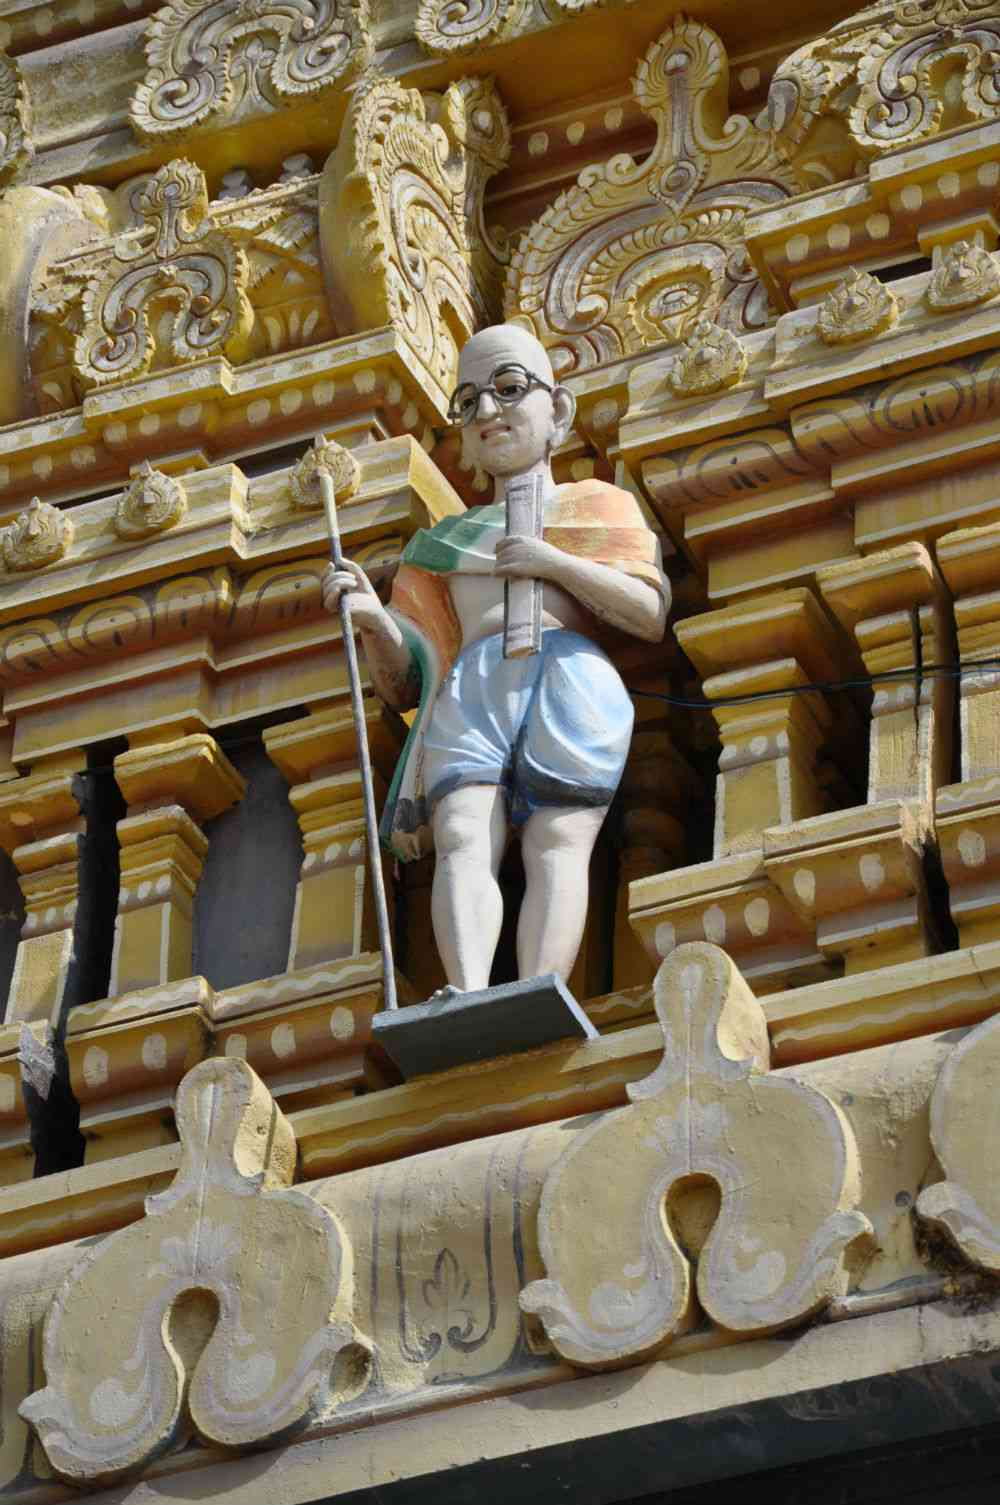 Mahatma Gandhi on the gopuram. Photo credit: Nayanjot Lahiri.